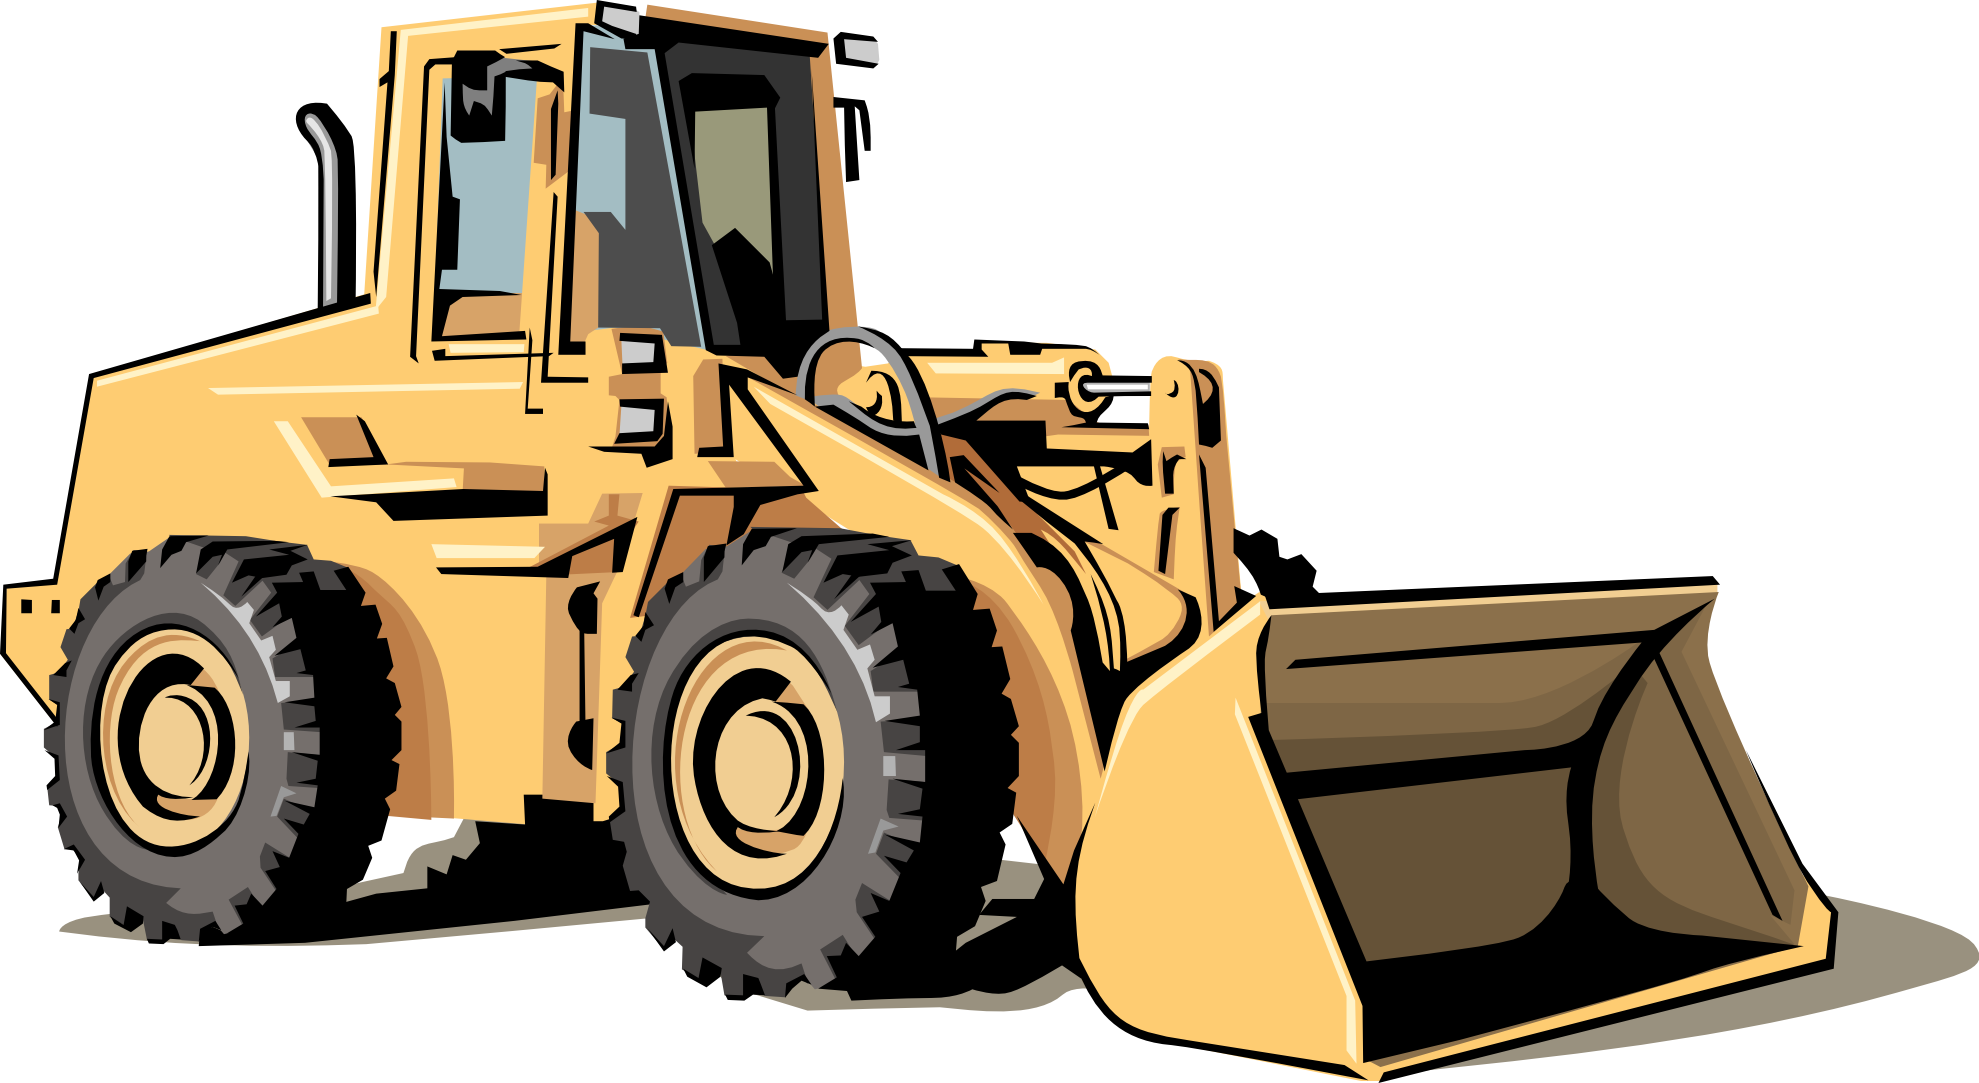 collection of equipment. Excavator clipart construction machine